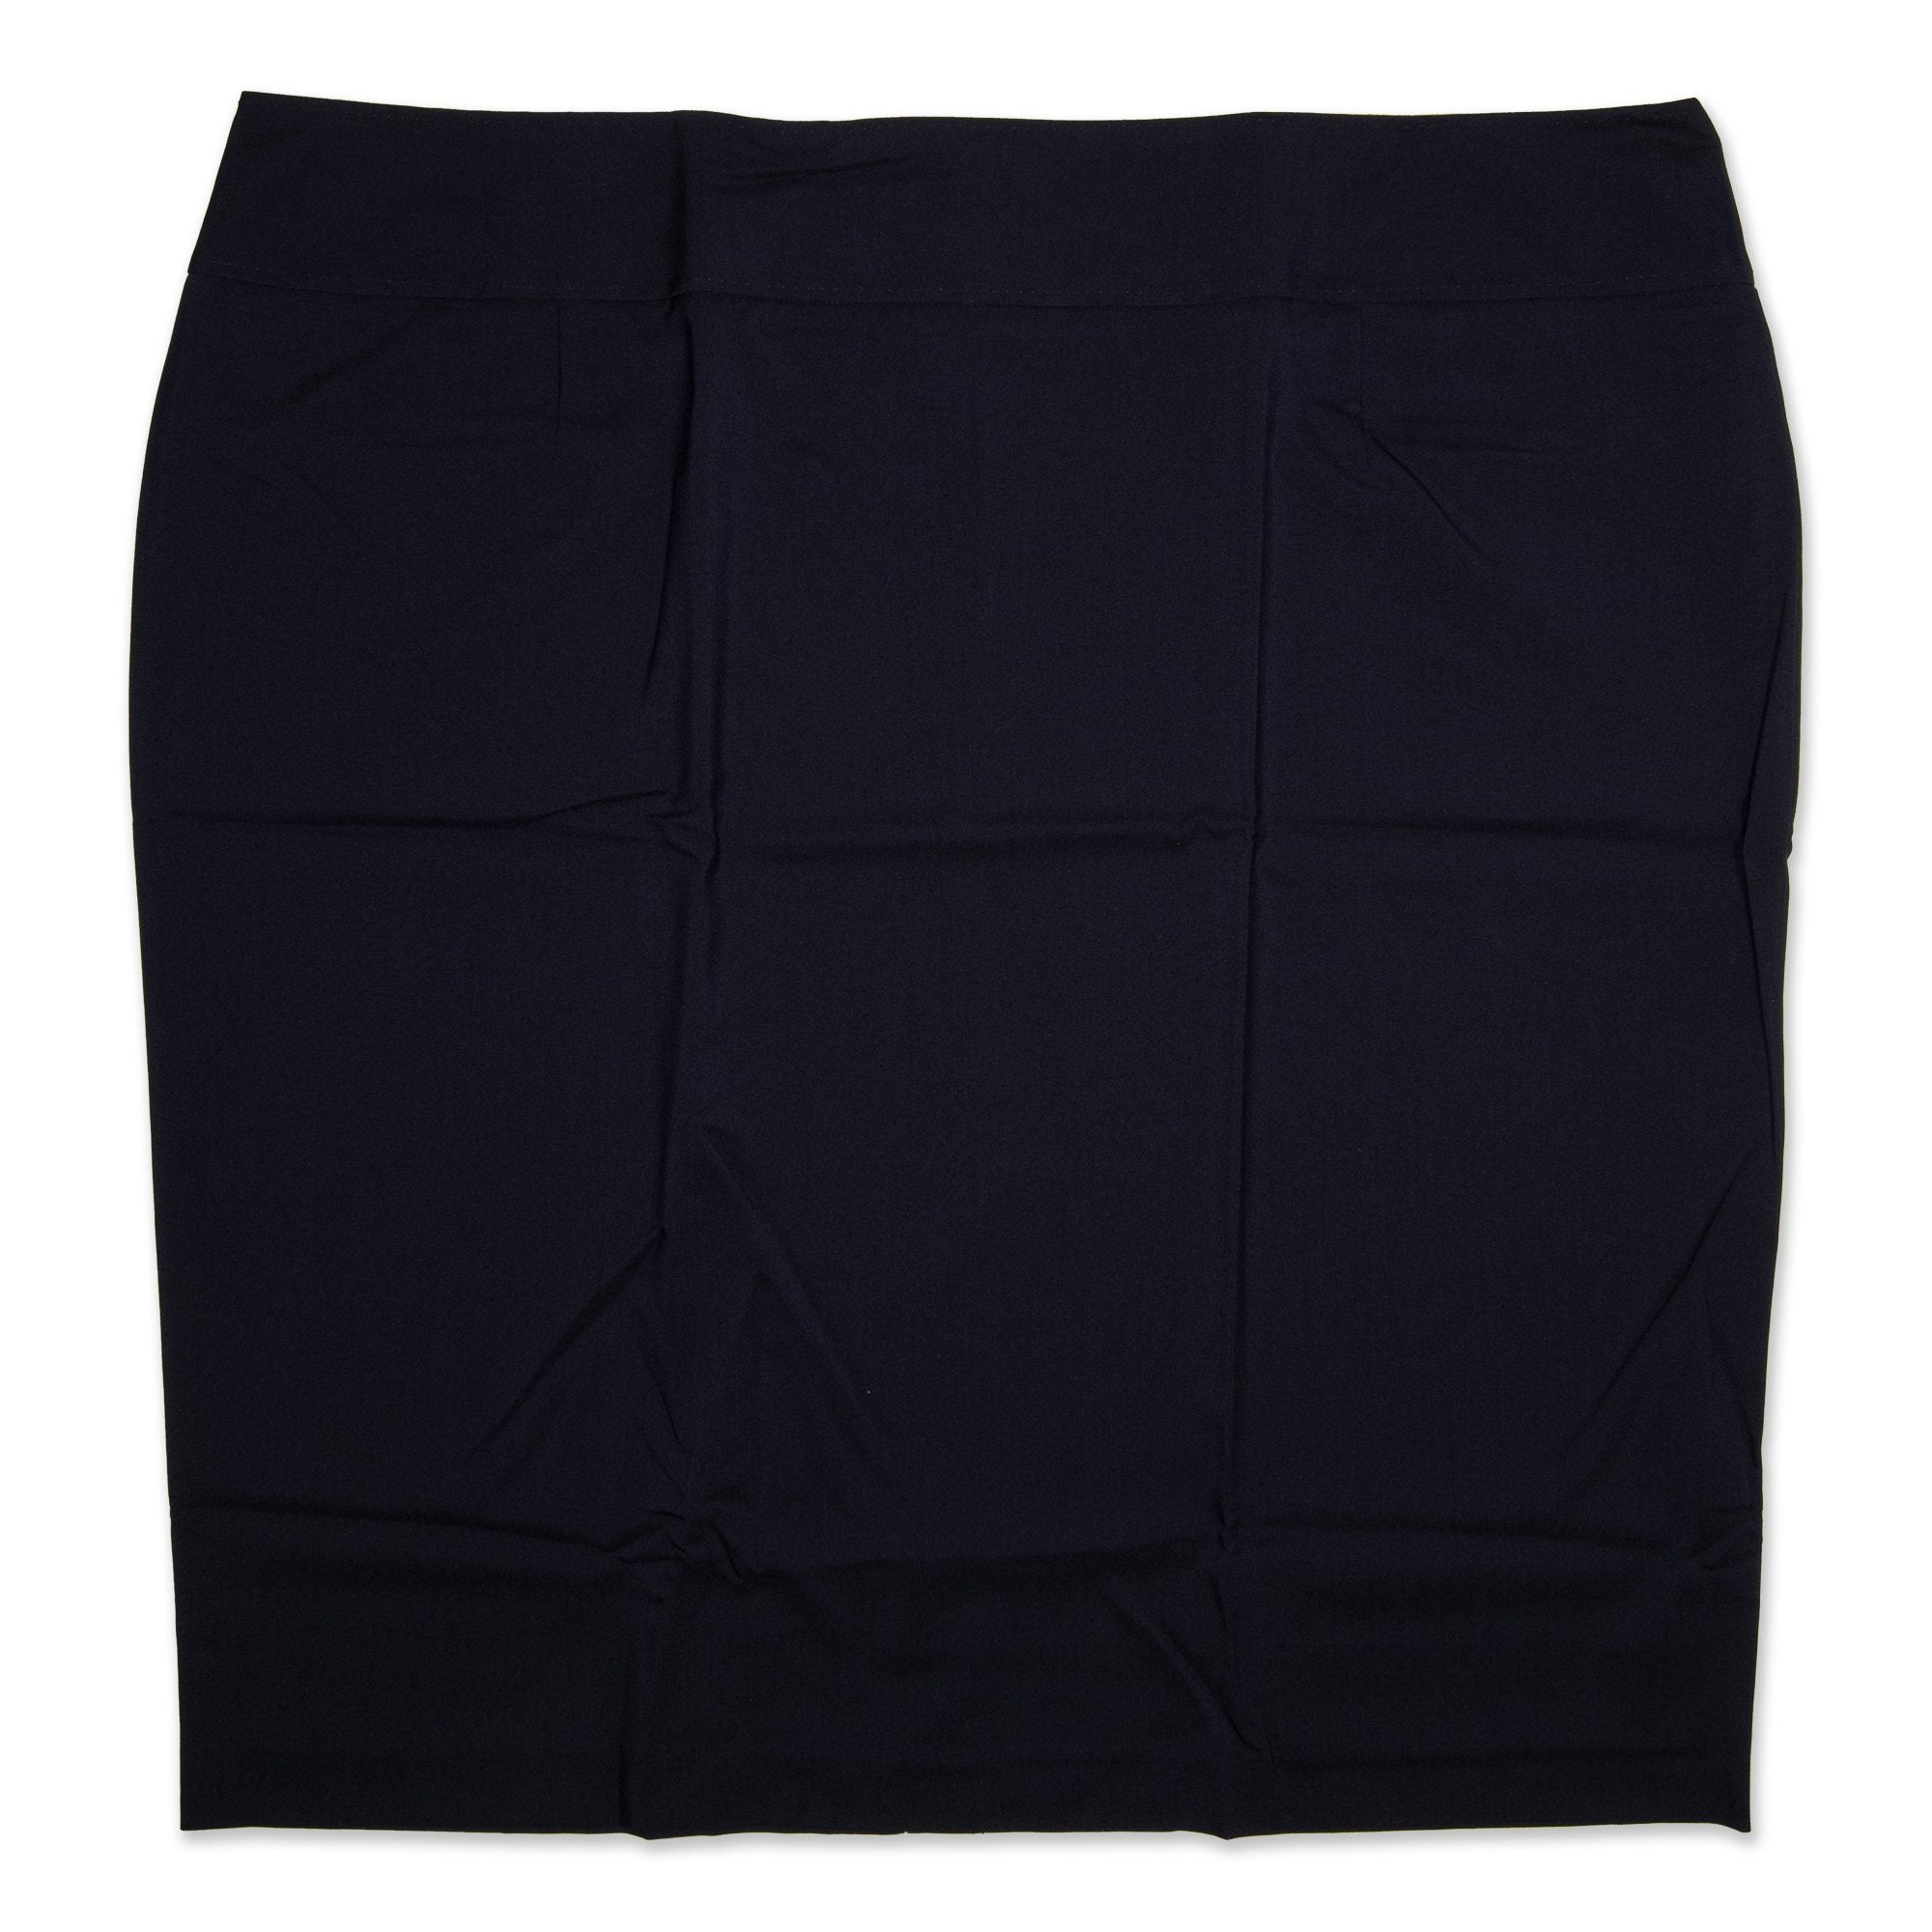 StyleCorp Long Pegged Yooke Women's Skirt - Navy Workwear StyleCorp